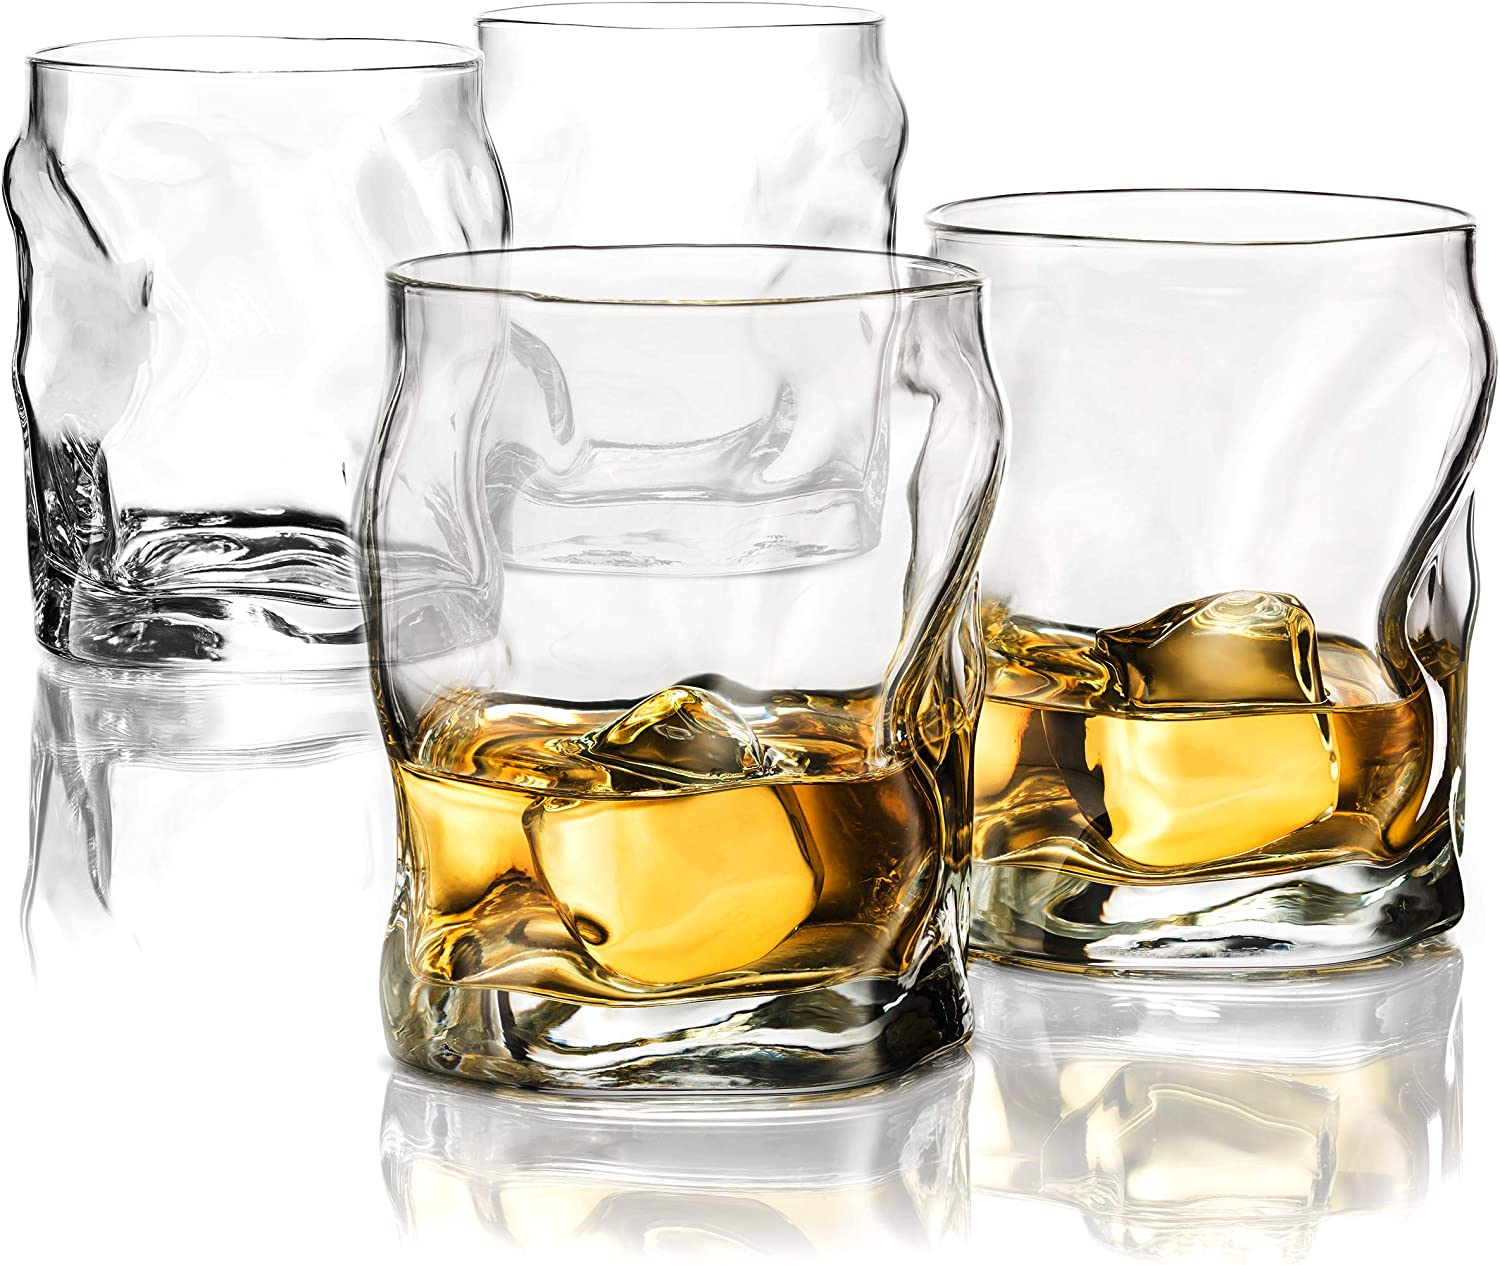 Double Old Fashioned Whiskey Glasses (Set of 4) Whiskey Glass Set, 14.¼ Ounce Crystal Clear Cocktail Glasses Barware For Whisky, Bourbon, Scotch, Water, Juice, Rock Glasses Drinking Glasses Set.